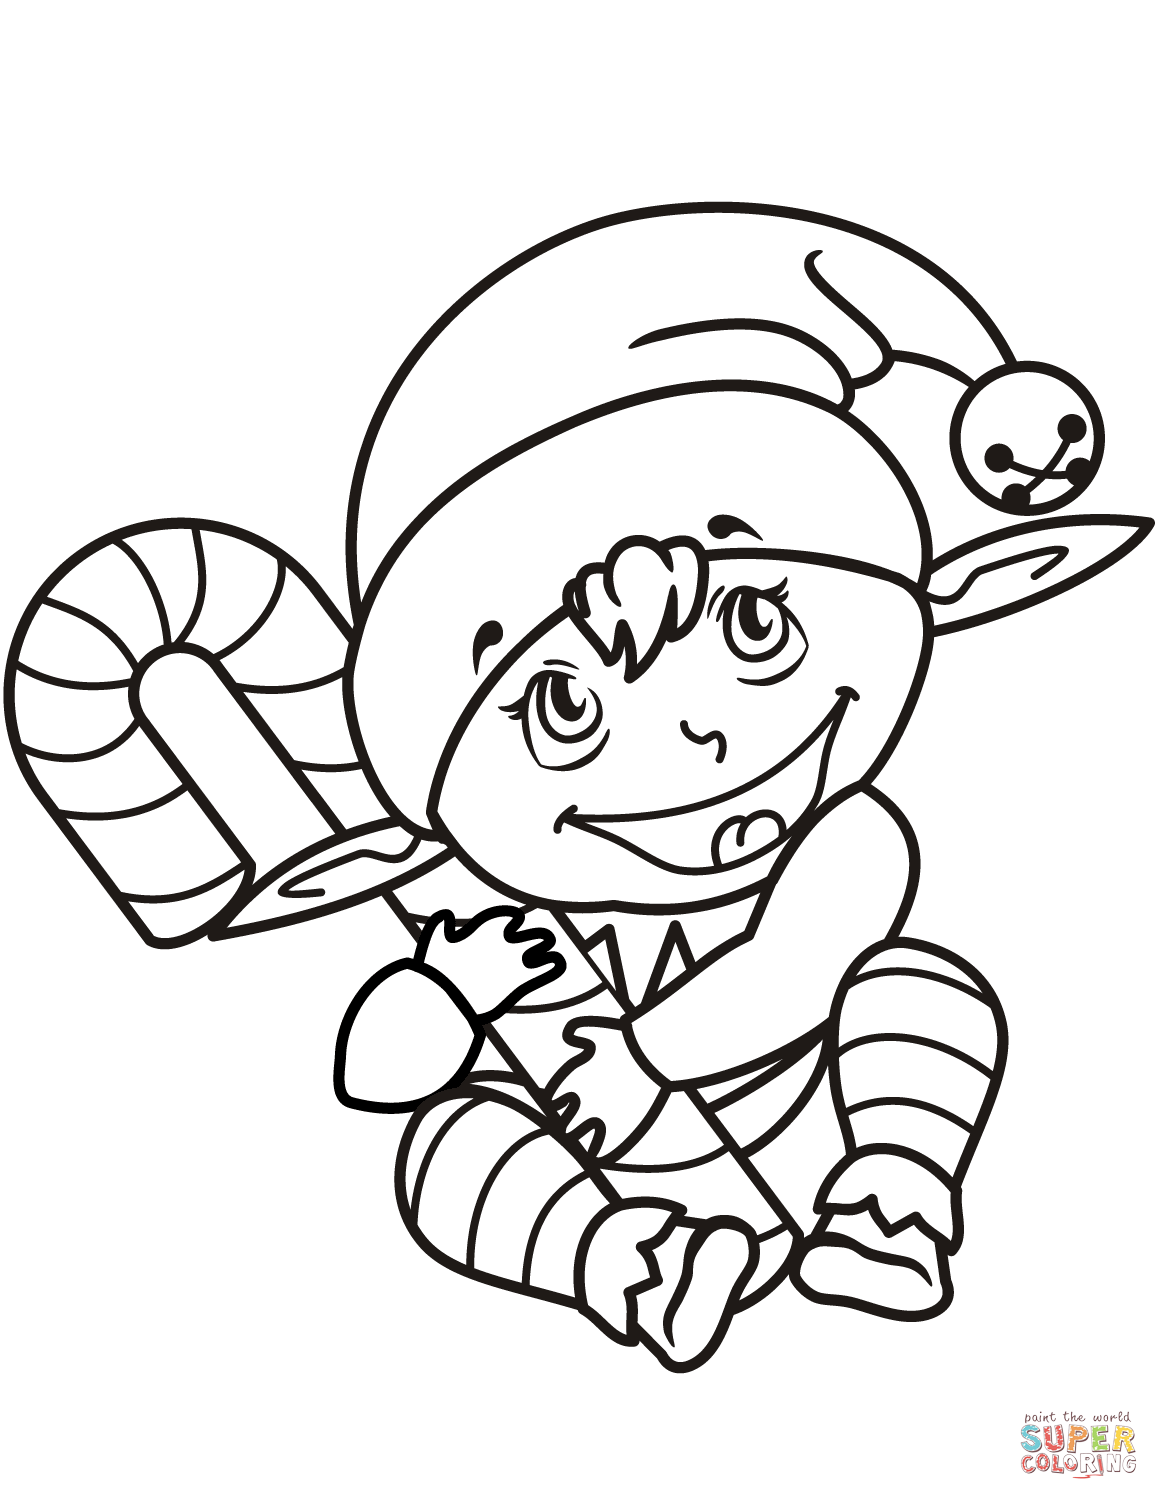 1159x1500 Cute Christmas Elf With Candy Cane Coloring Page Free Printable